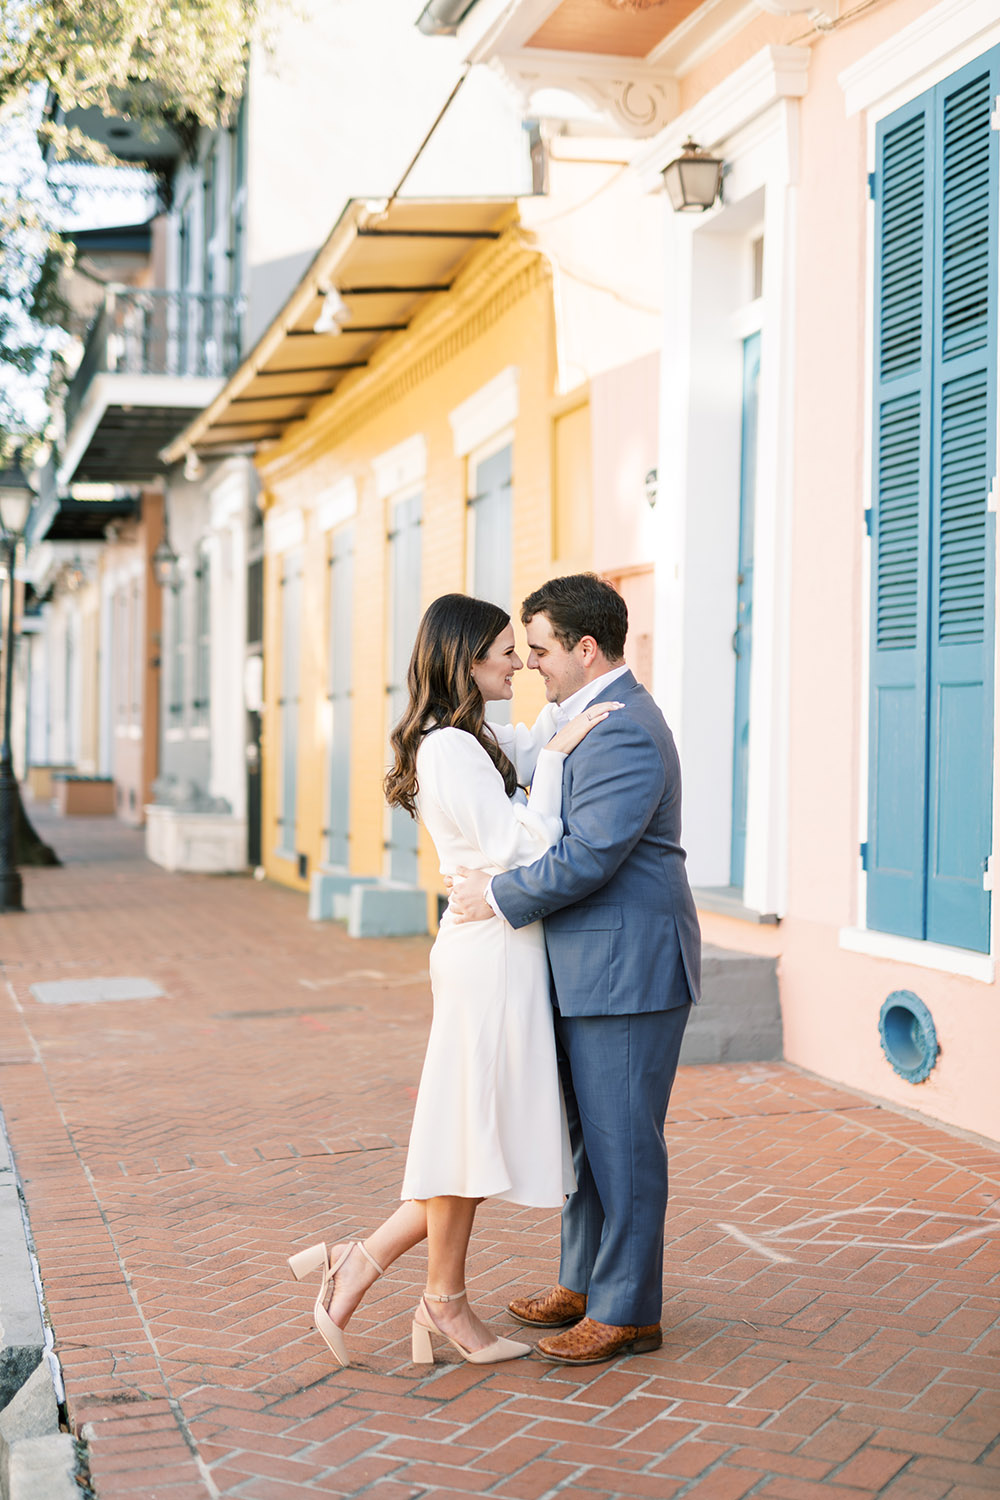 Engagement Photo in New Orleans French Quarter by Peony Photography